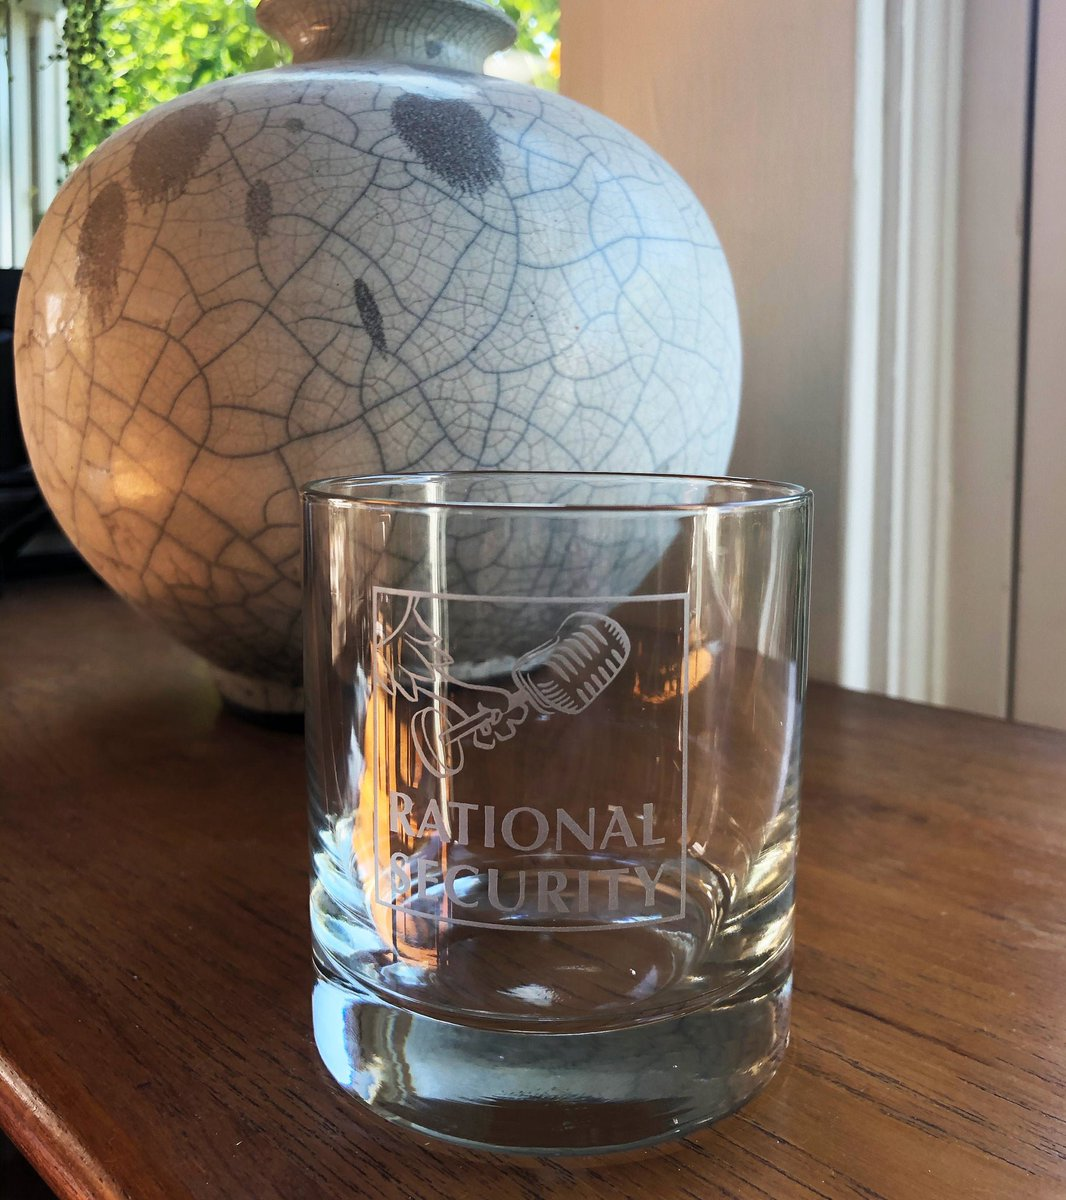 A pleasure to join @shaneharris, @Susan_Hennessey, and @benjaminwittes for today's Rational Security—even though Shane mistook Susan for the sorely missed @tcwittes! I'm not saying it's because of a potent potable in Shane's RatSec glassware. (But I'm not NOT saying it either.) twitter.com/ratlsecurity/s…